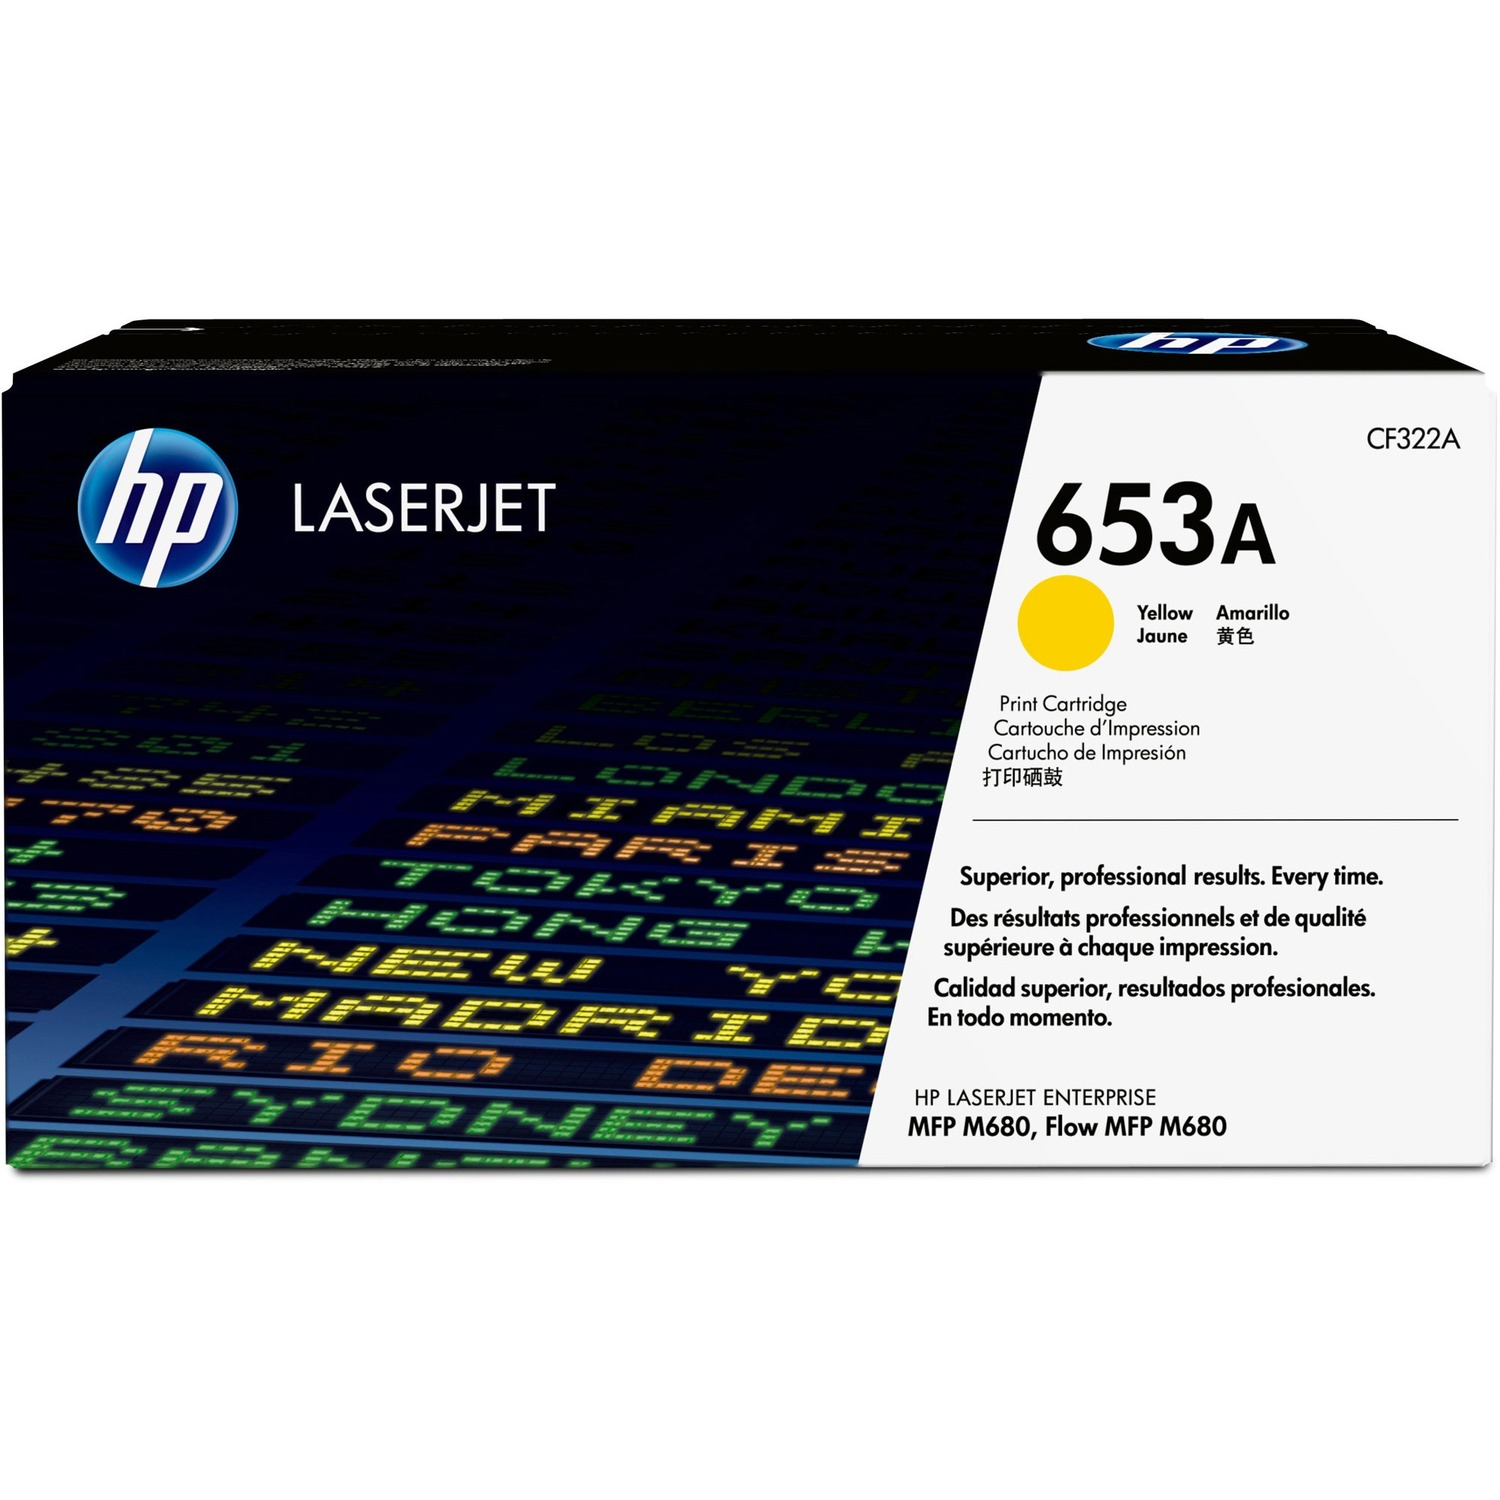 HP 653A Toner Cartridge - Yellow